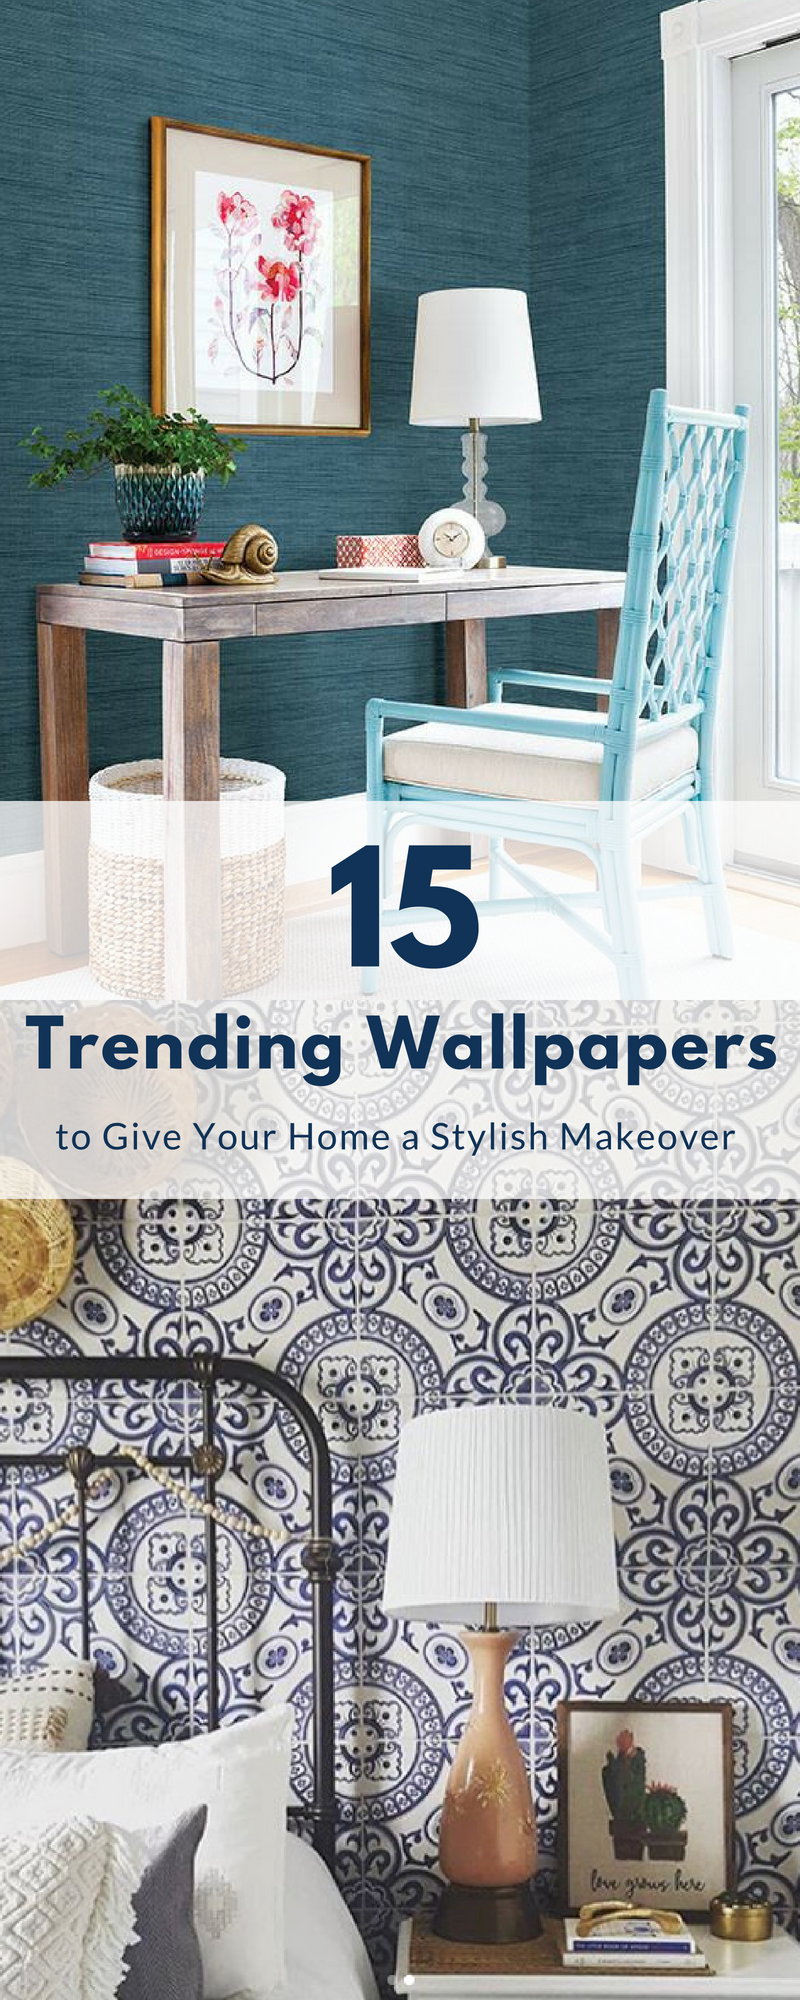 15 Trending Wallpapers for Your Home Best wallpaper designs 800x2000